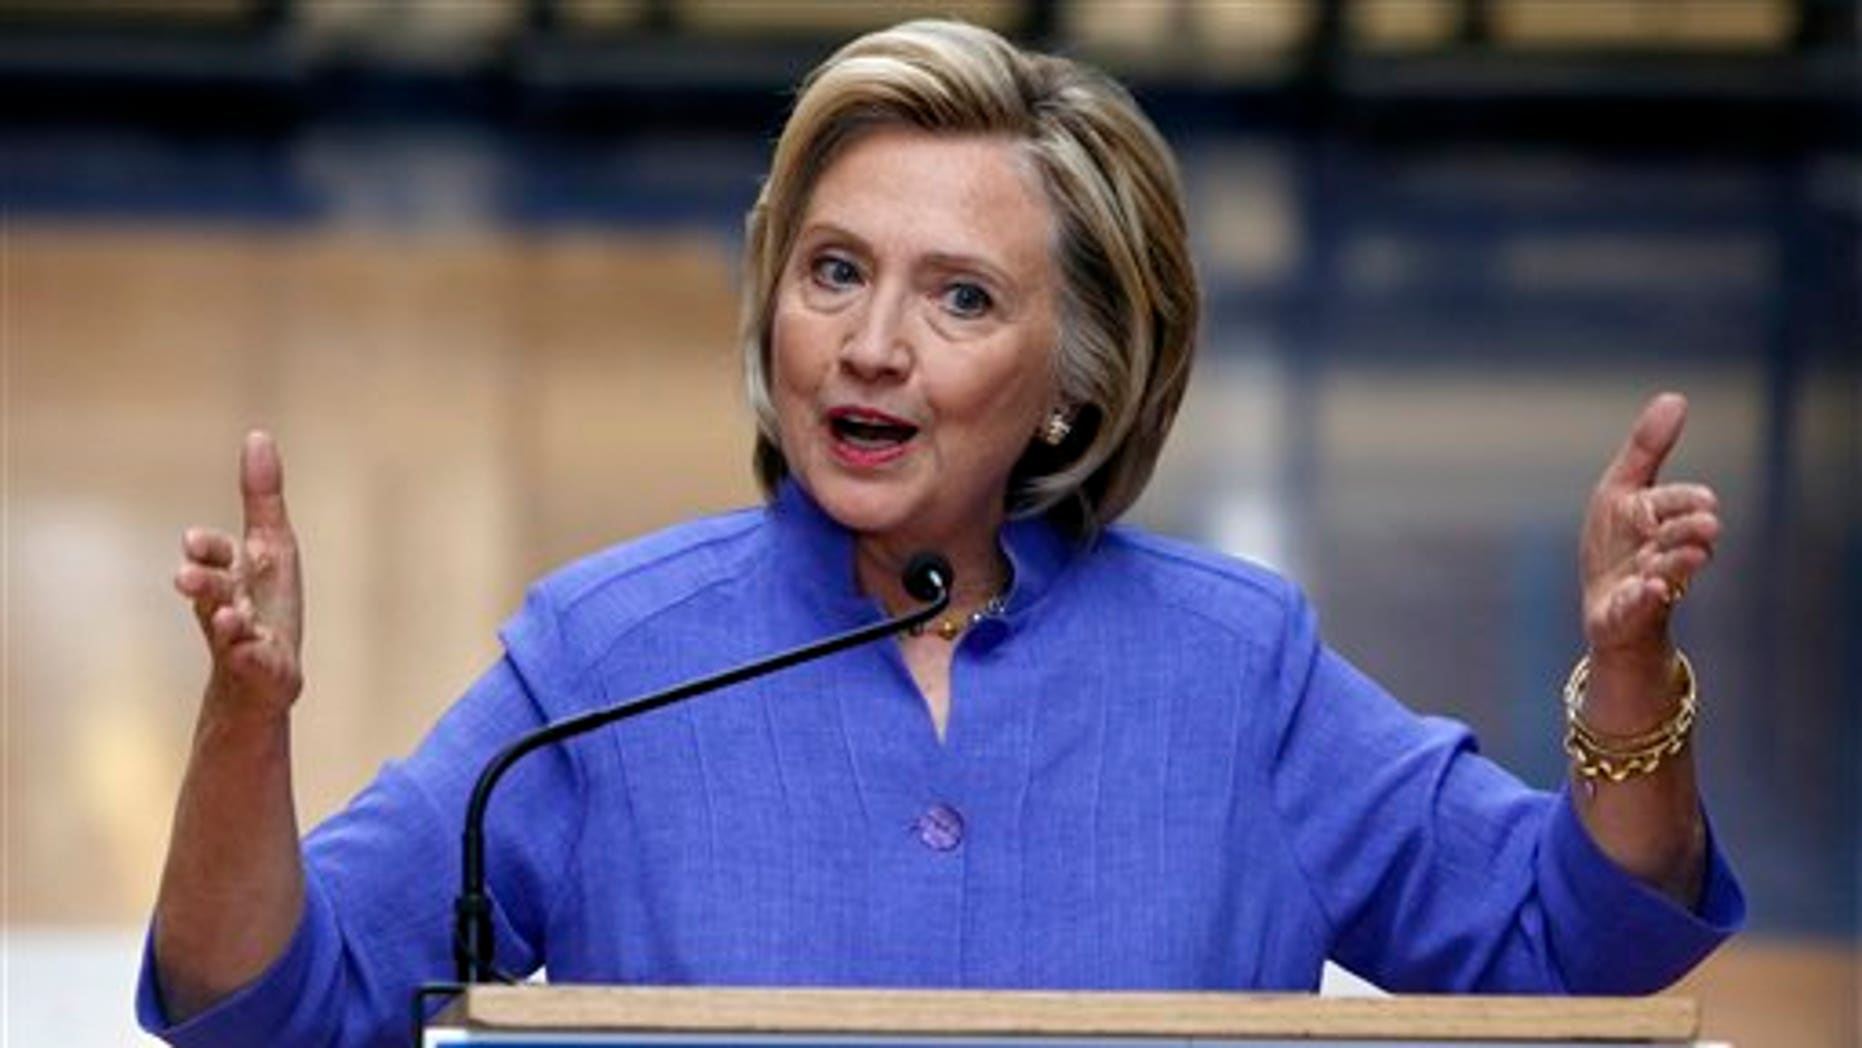 Aug. 10: Democratic presidential candidate Hillary Clinton answers reporters questions after announcing her college affordability plan at the high school in Exeter, N.H.